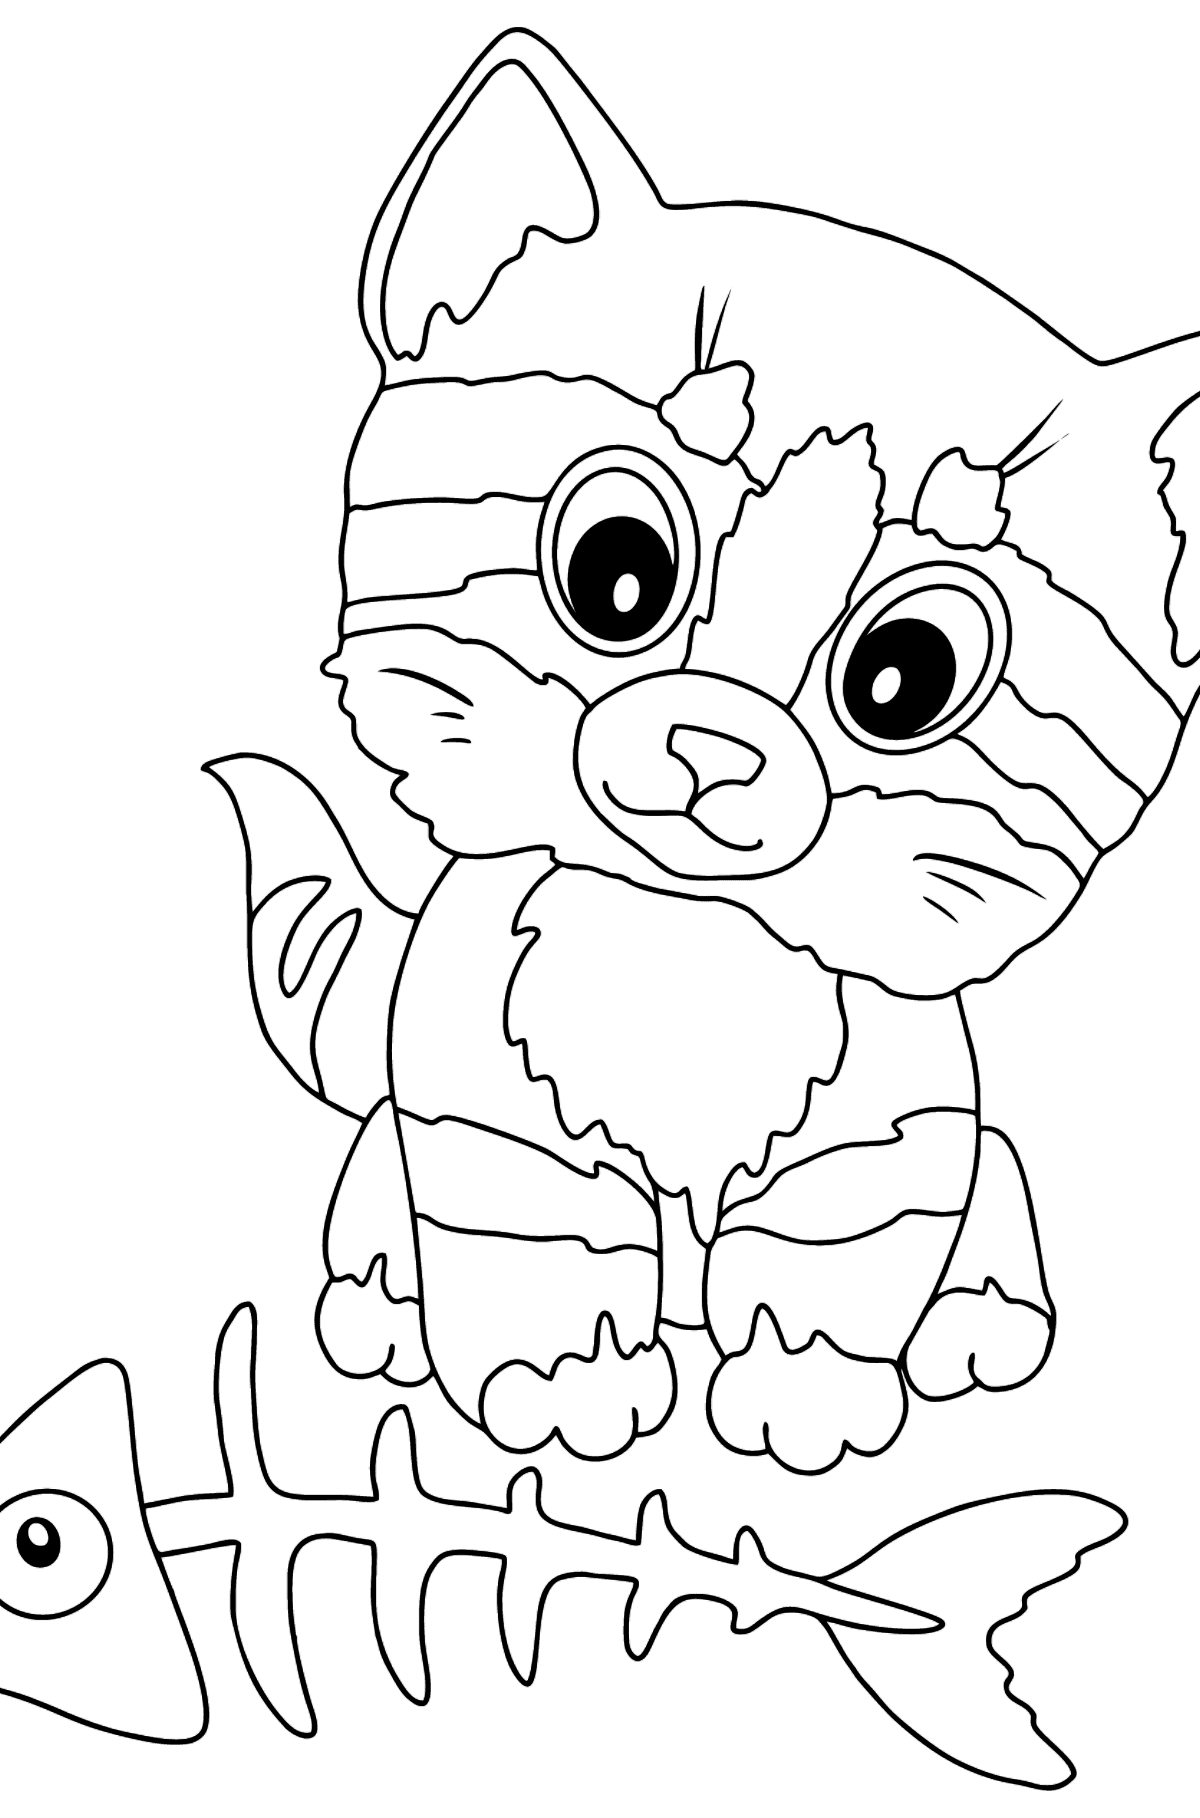 Coloring Page - A Cat with a Fish Bone - Coloring Pages for Kids